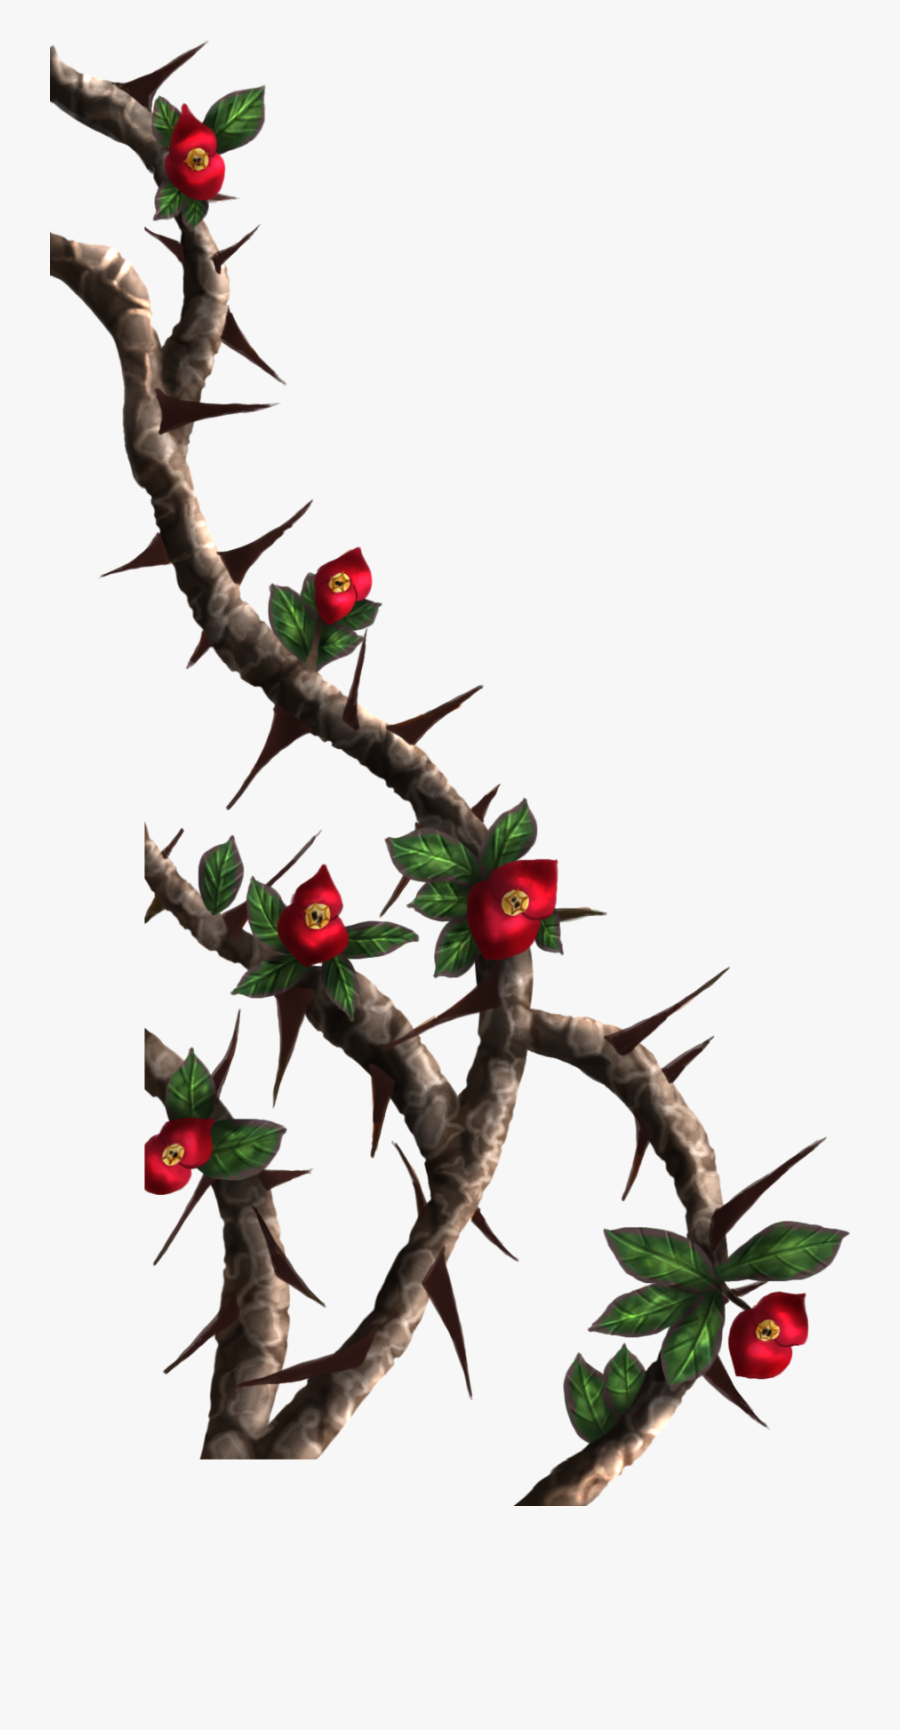 Espinas Thorns Freetoedit - Roses With Thorns Png, Transparent Clipart